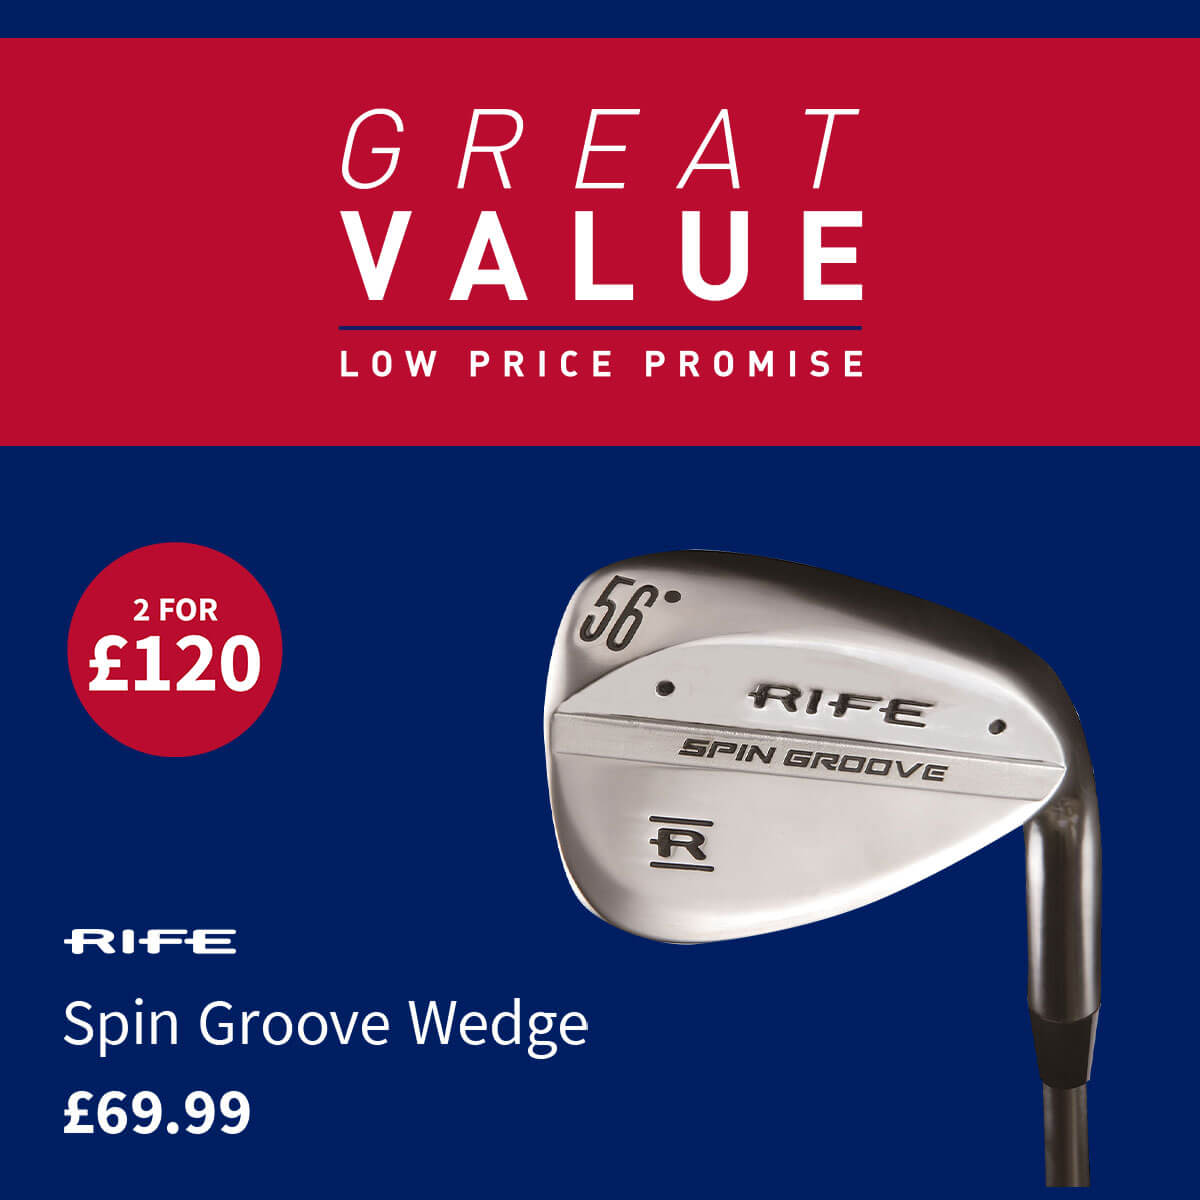 GREAT VALUE - RIFE SPIN GROOVE WEDGE